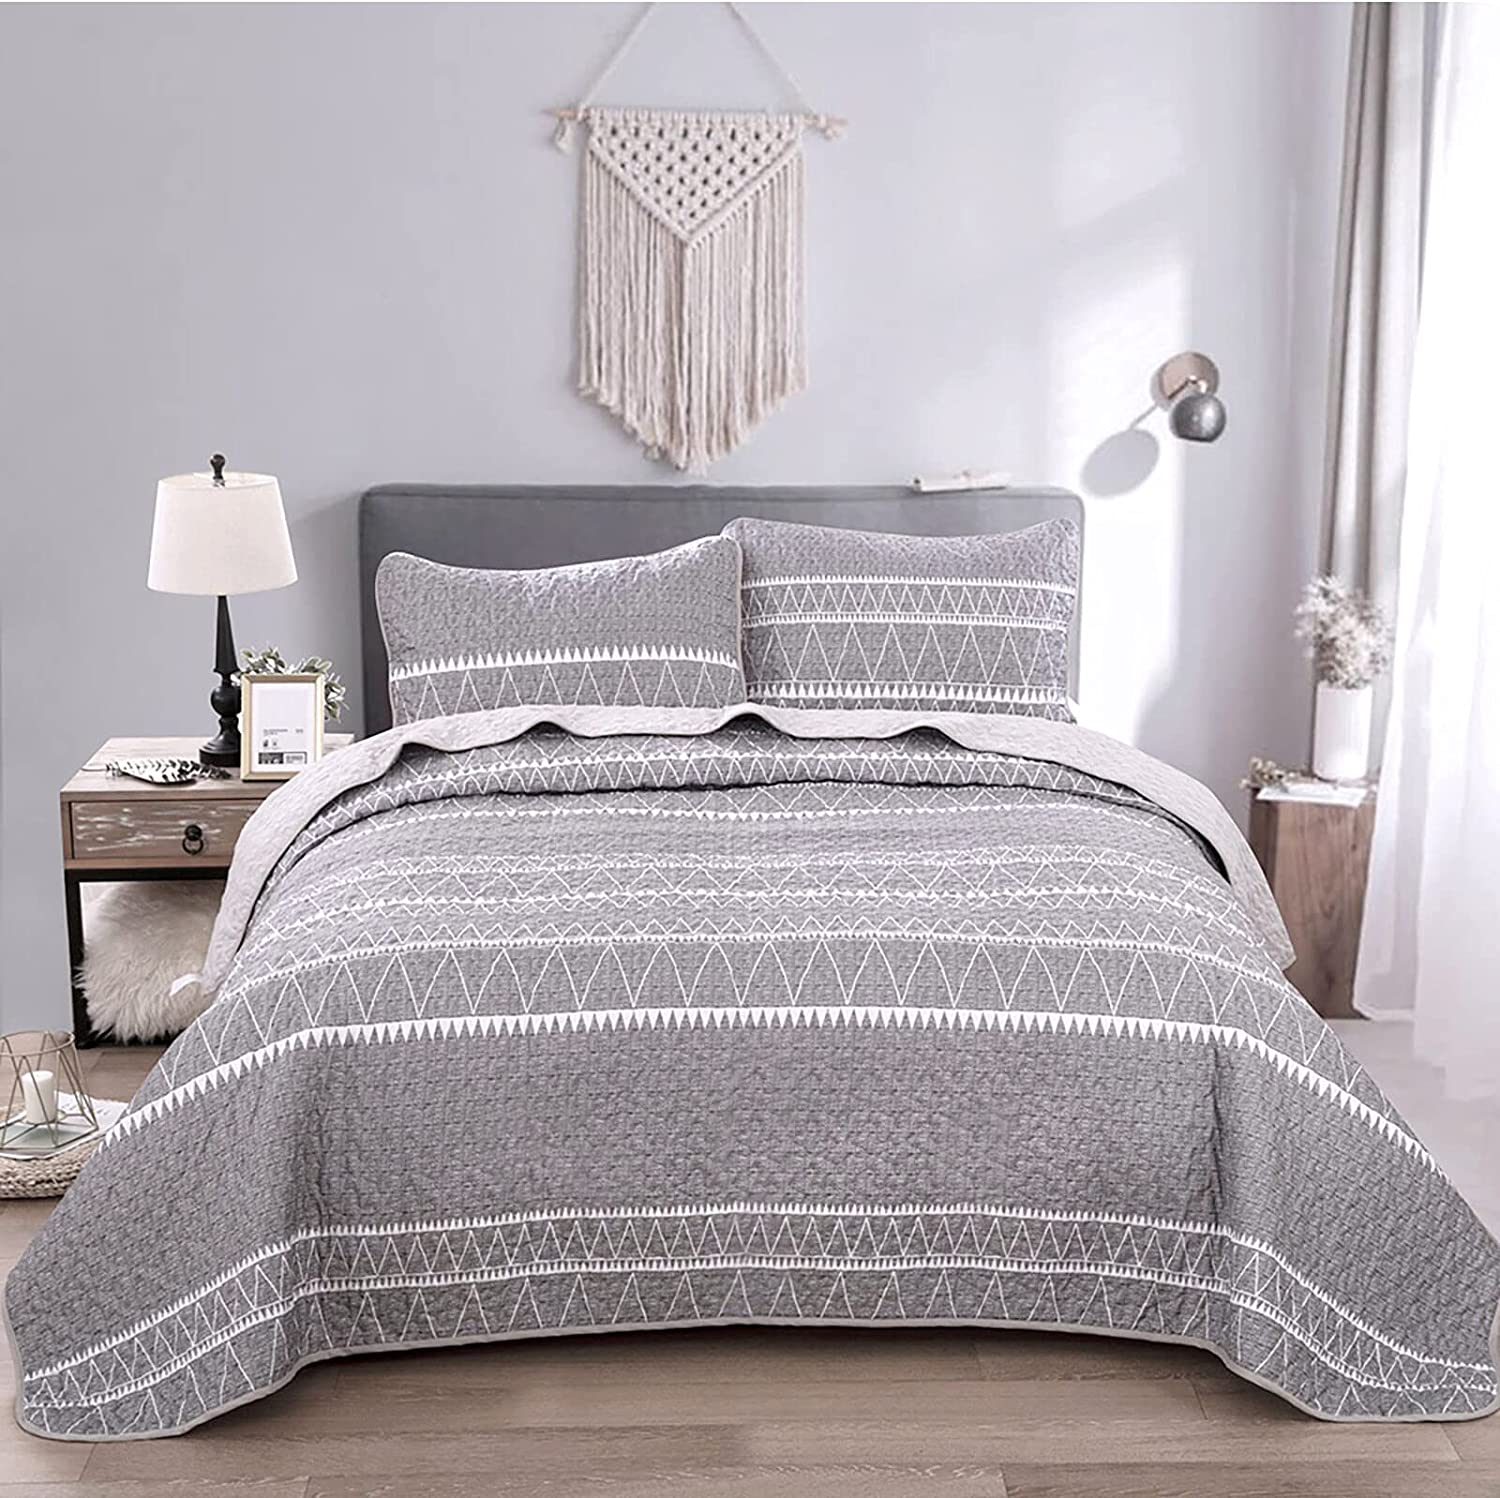 Grey Quilt Set Queen Price reduction Gray Striped Pattern Triangle Beds Printed Branded goods